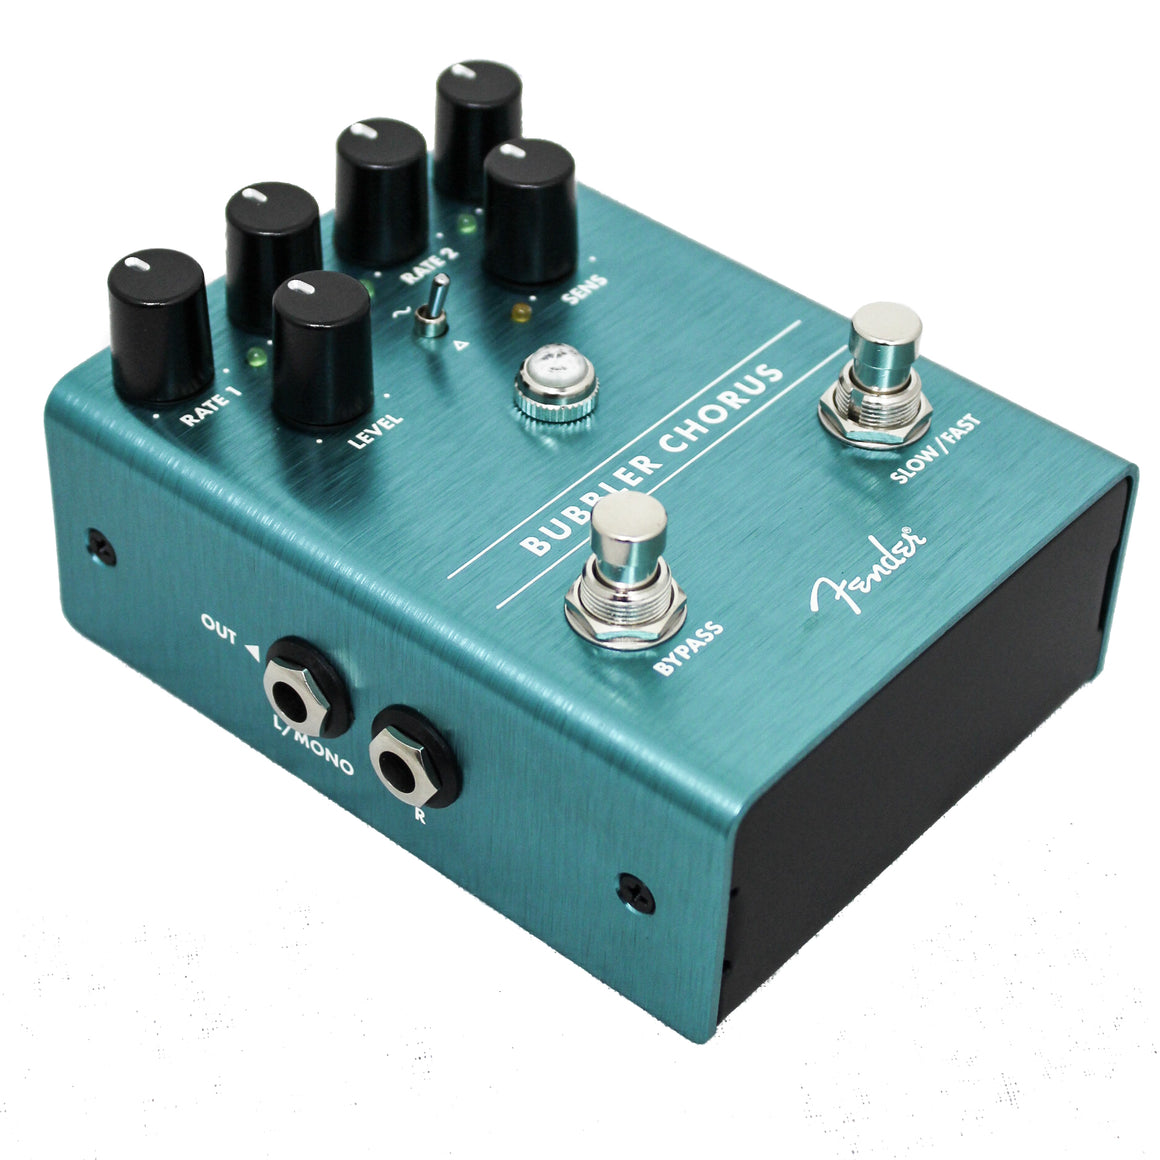 Fender BUBBLER CHORUS Analog Chorus-Vibrato Guitar Effects Pedal